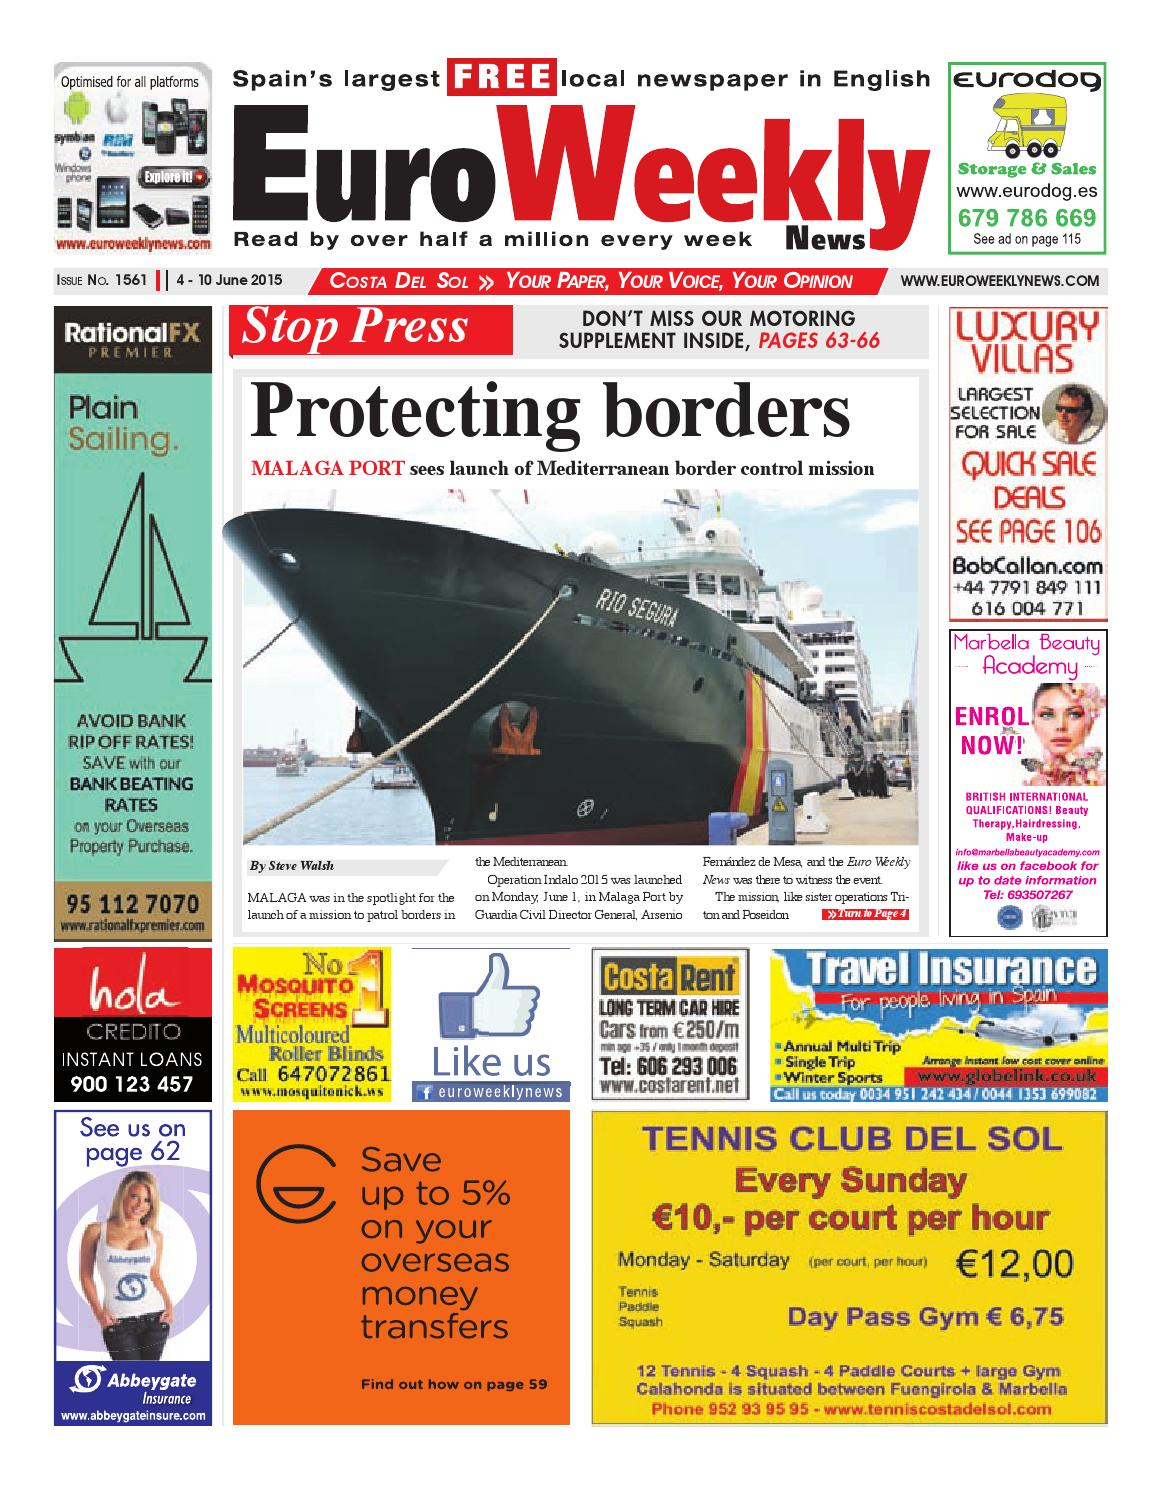 Euro weekly news costa del sol 4 10 june 2015 issue 1561 by euro euro weekly news costa del sol 4 10 june 2015 issue 1561 by euro weekly news media sa issuu fandeluxe Choice Image